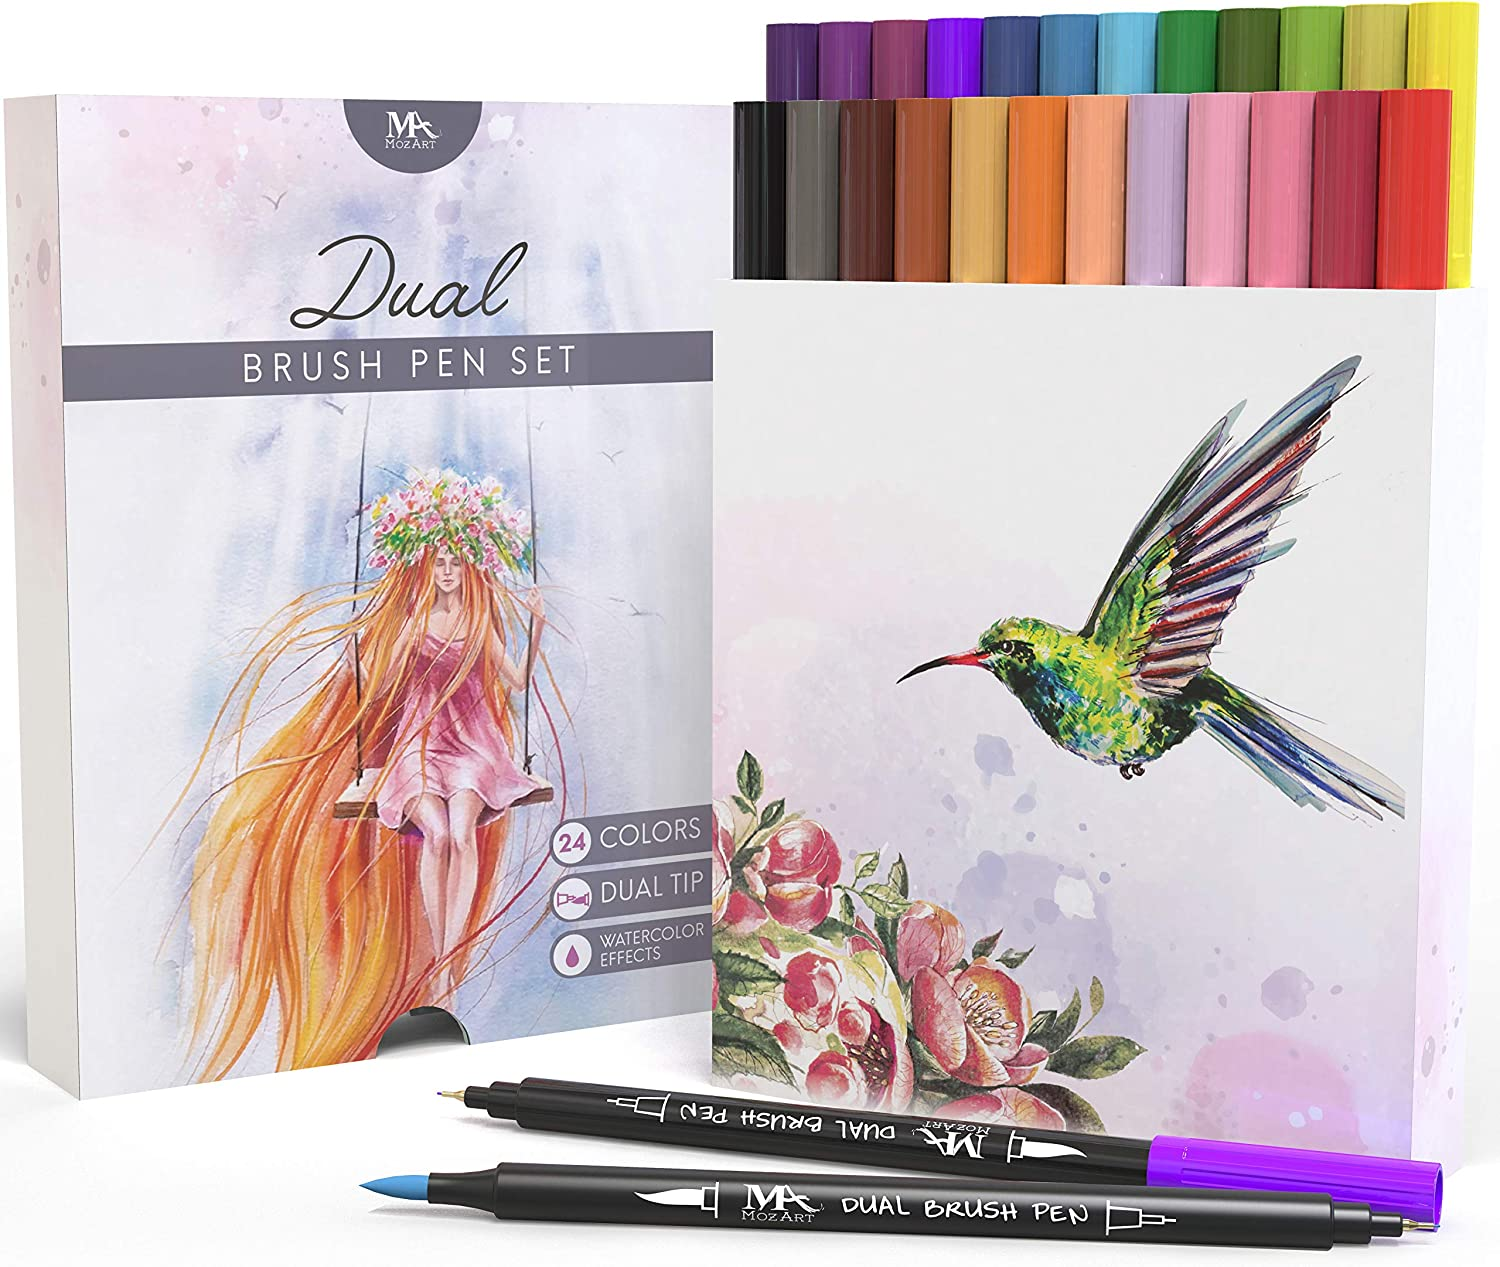 Set de rotuladores con doble punta de pincel- 24 colores - alta calidad, crea un efecto acuarela - Ideal para libros para colorear para adultos, manga, comic, caligrafía - MozArt Supplies